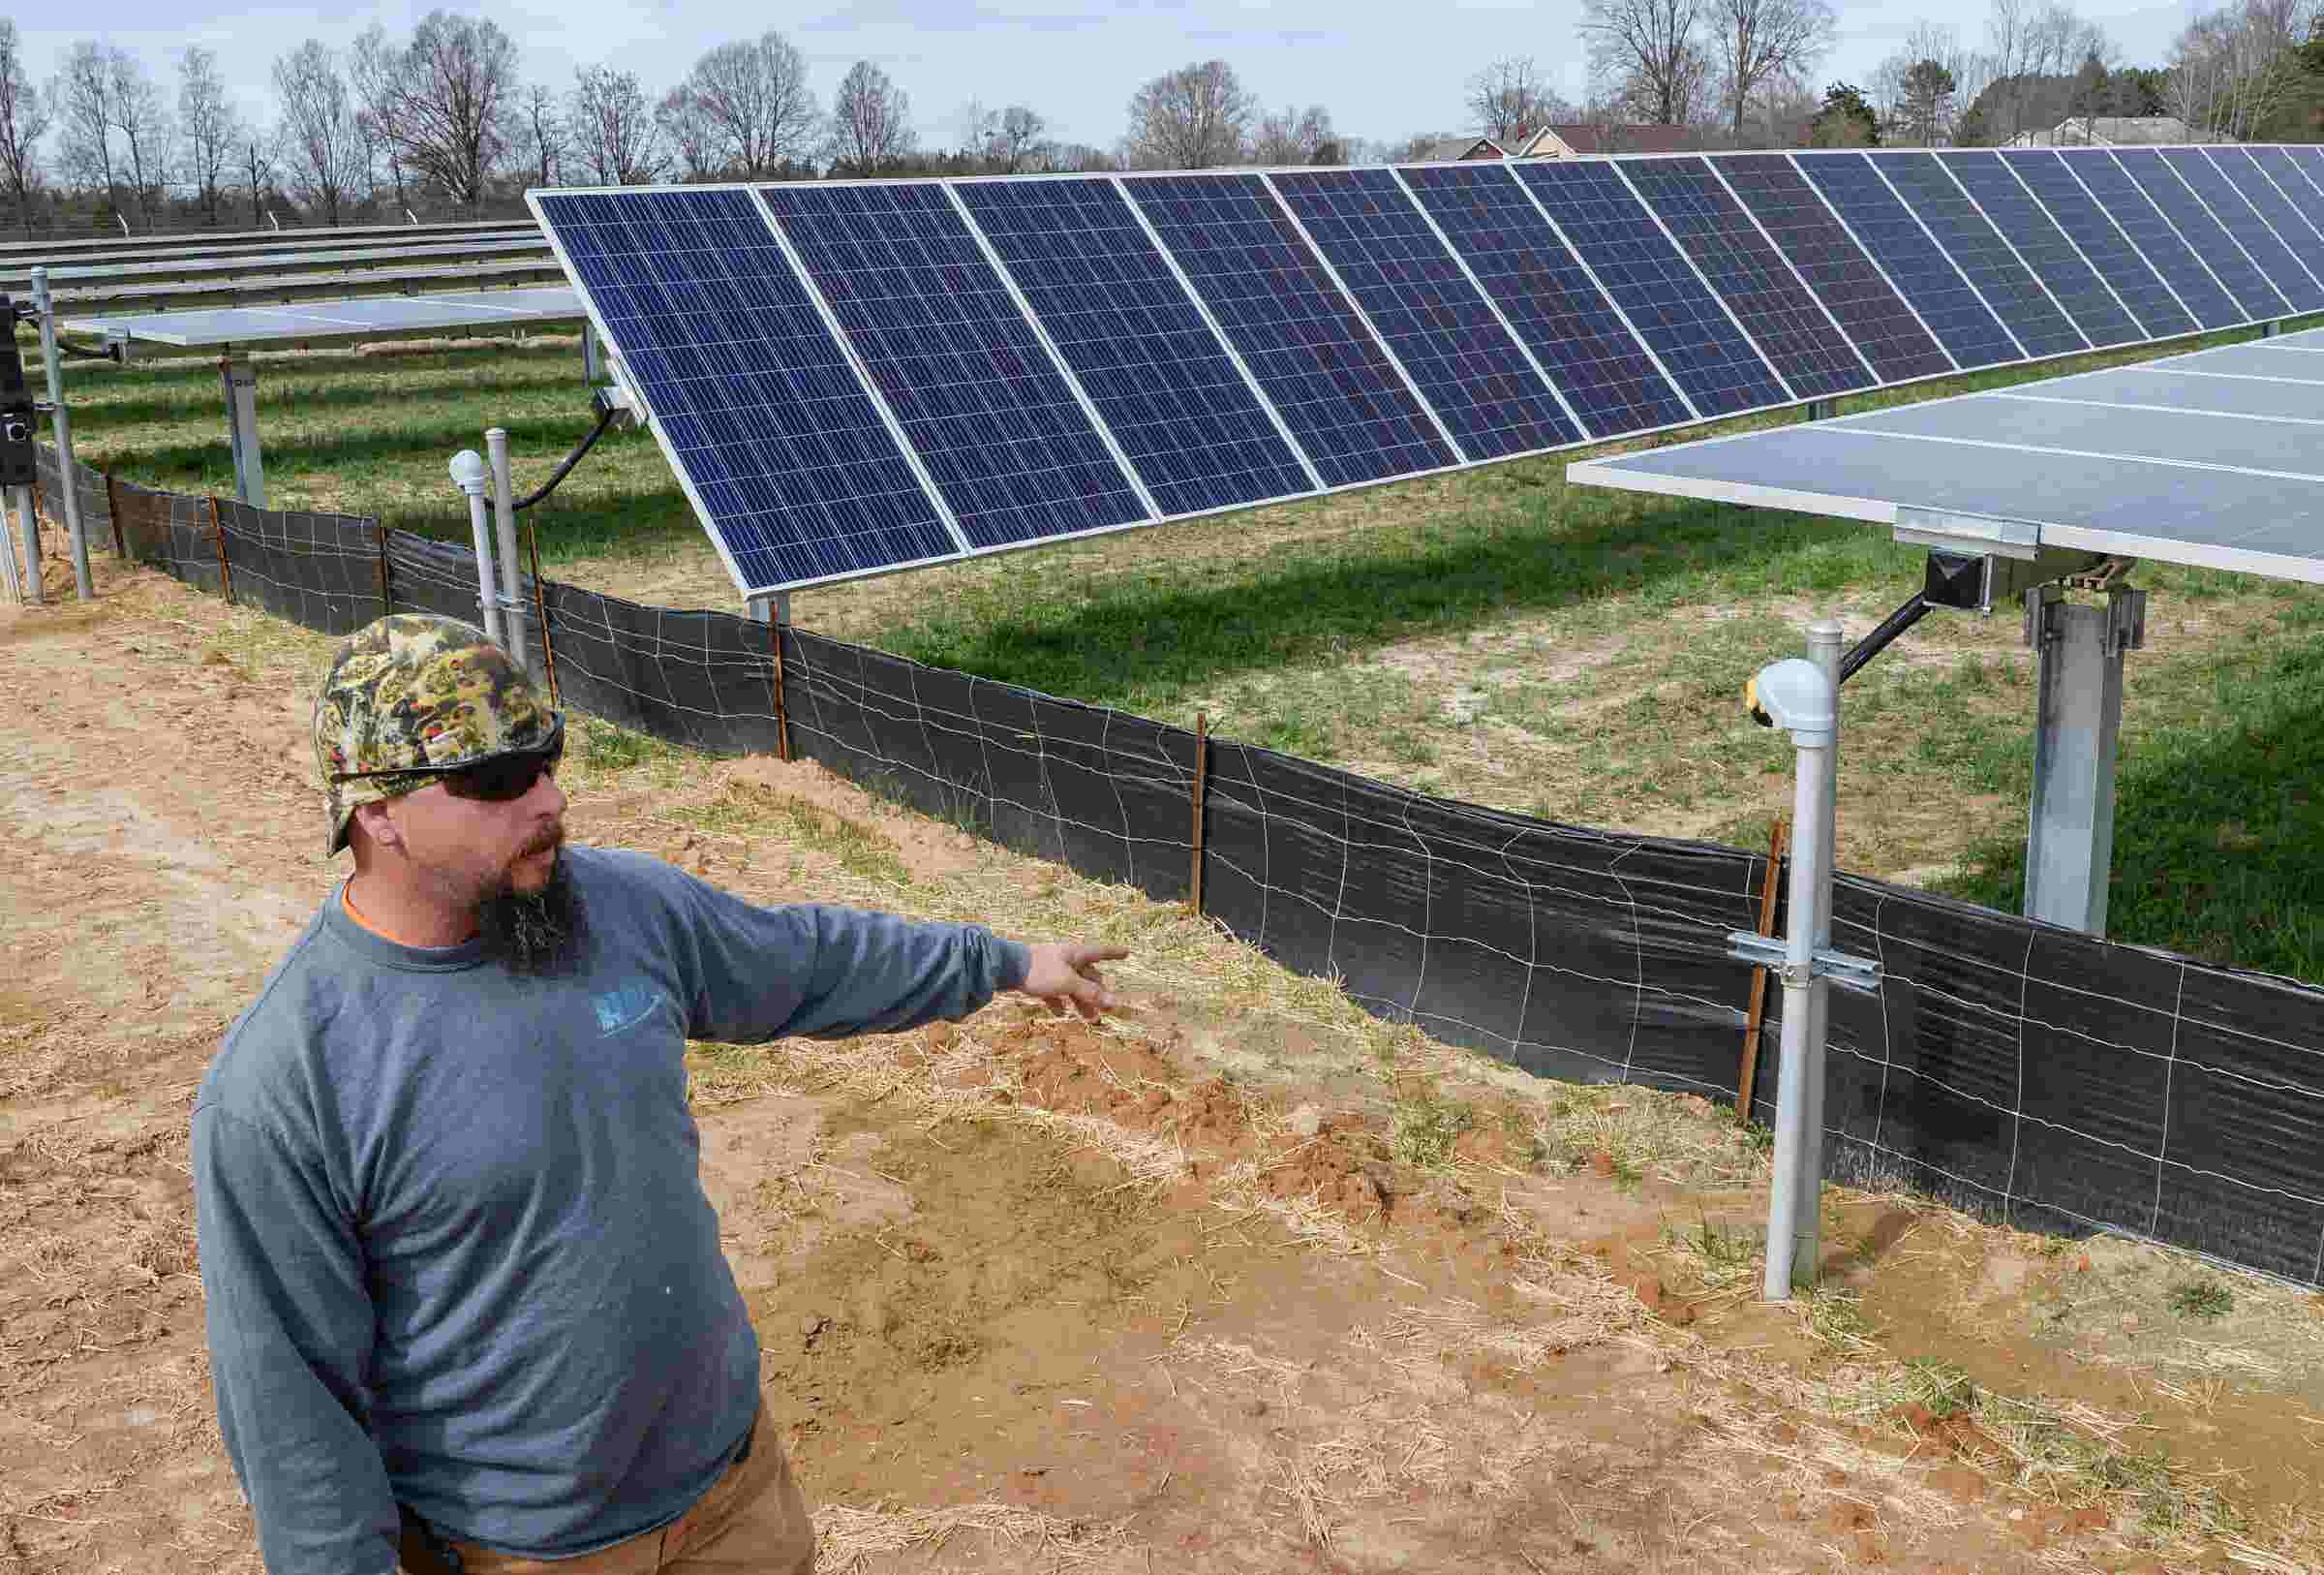 With help from tax breaks, Anderson pushes ahead with solar farms